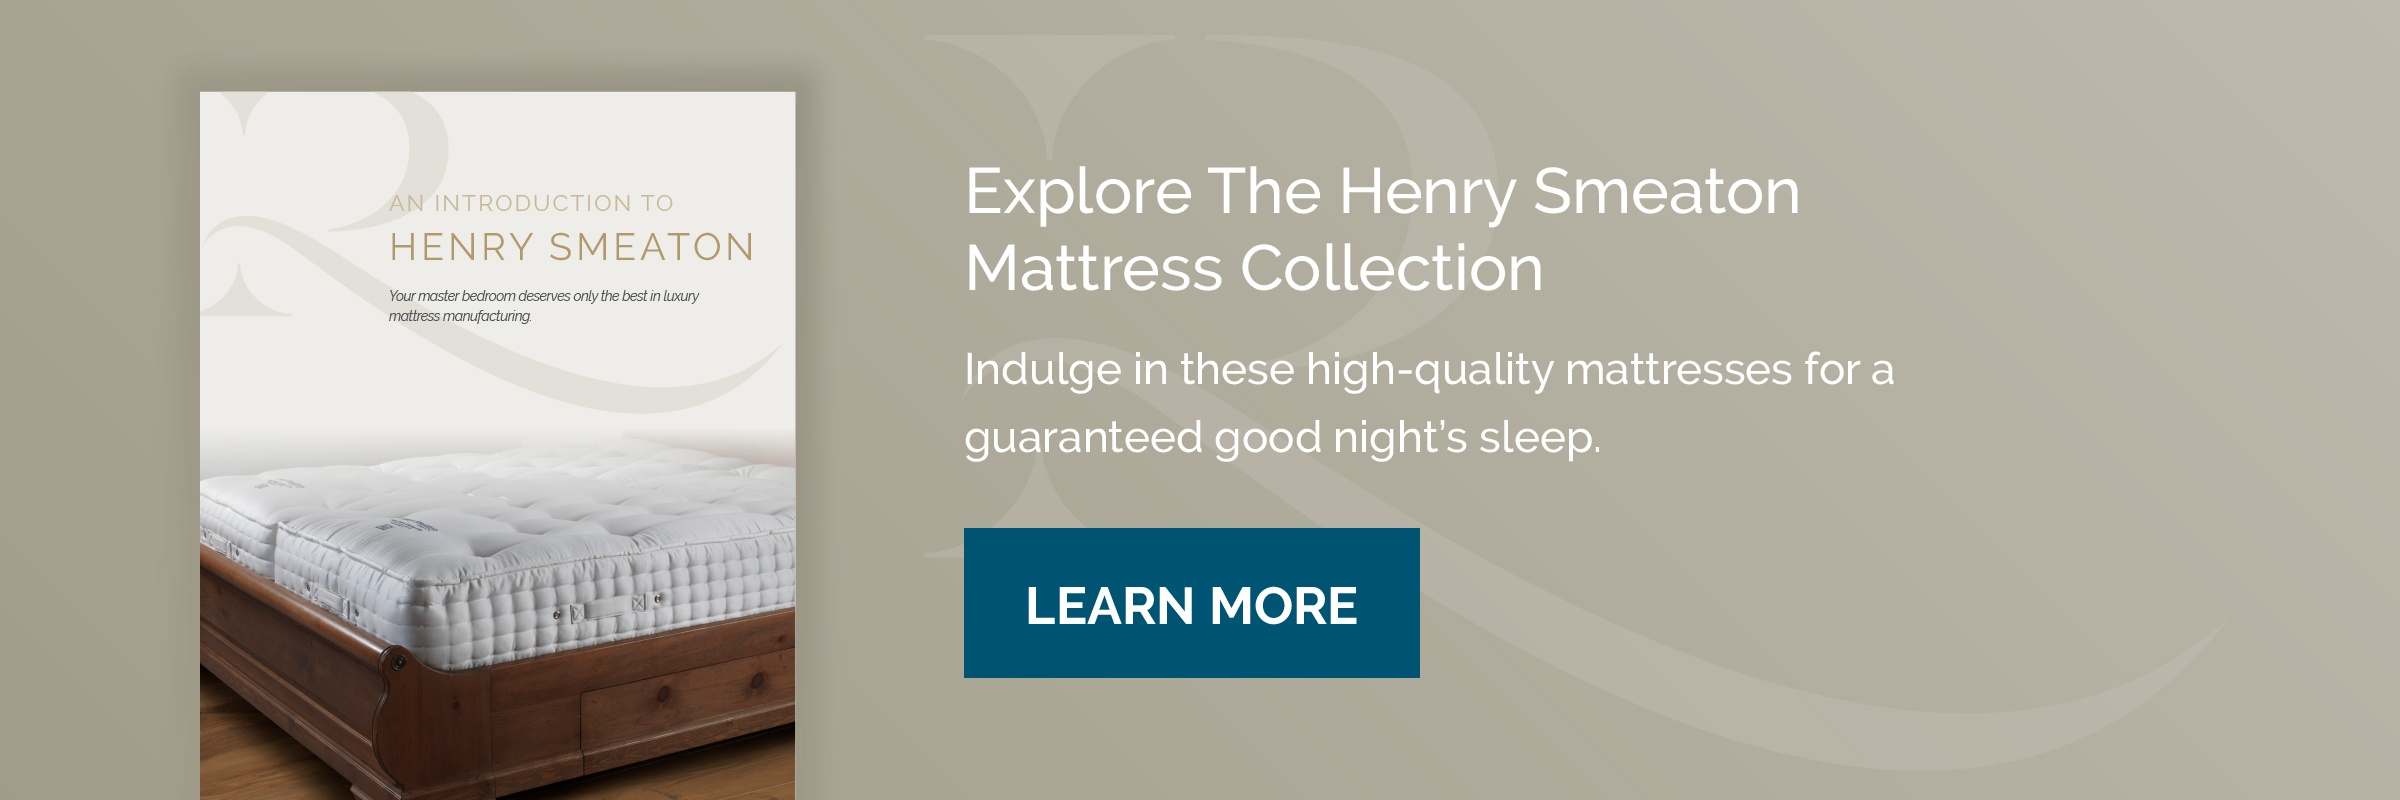 Download the guide to Henry Smeaton